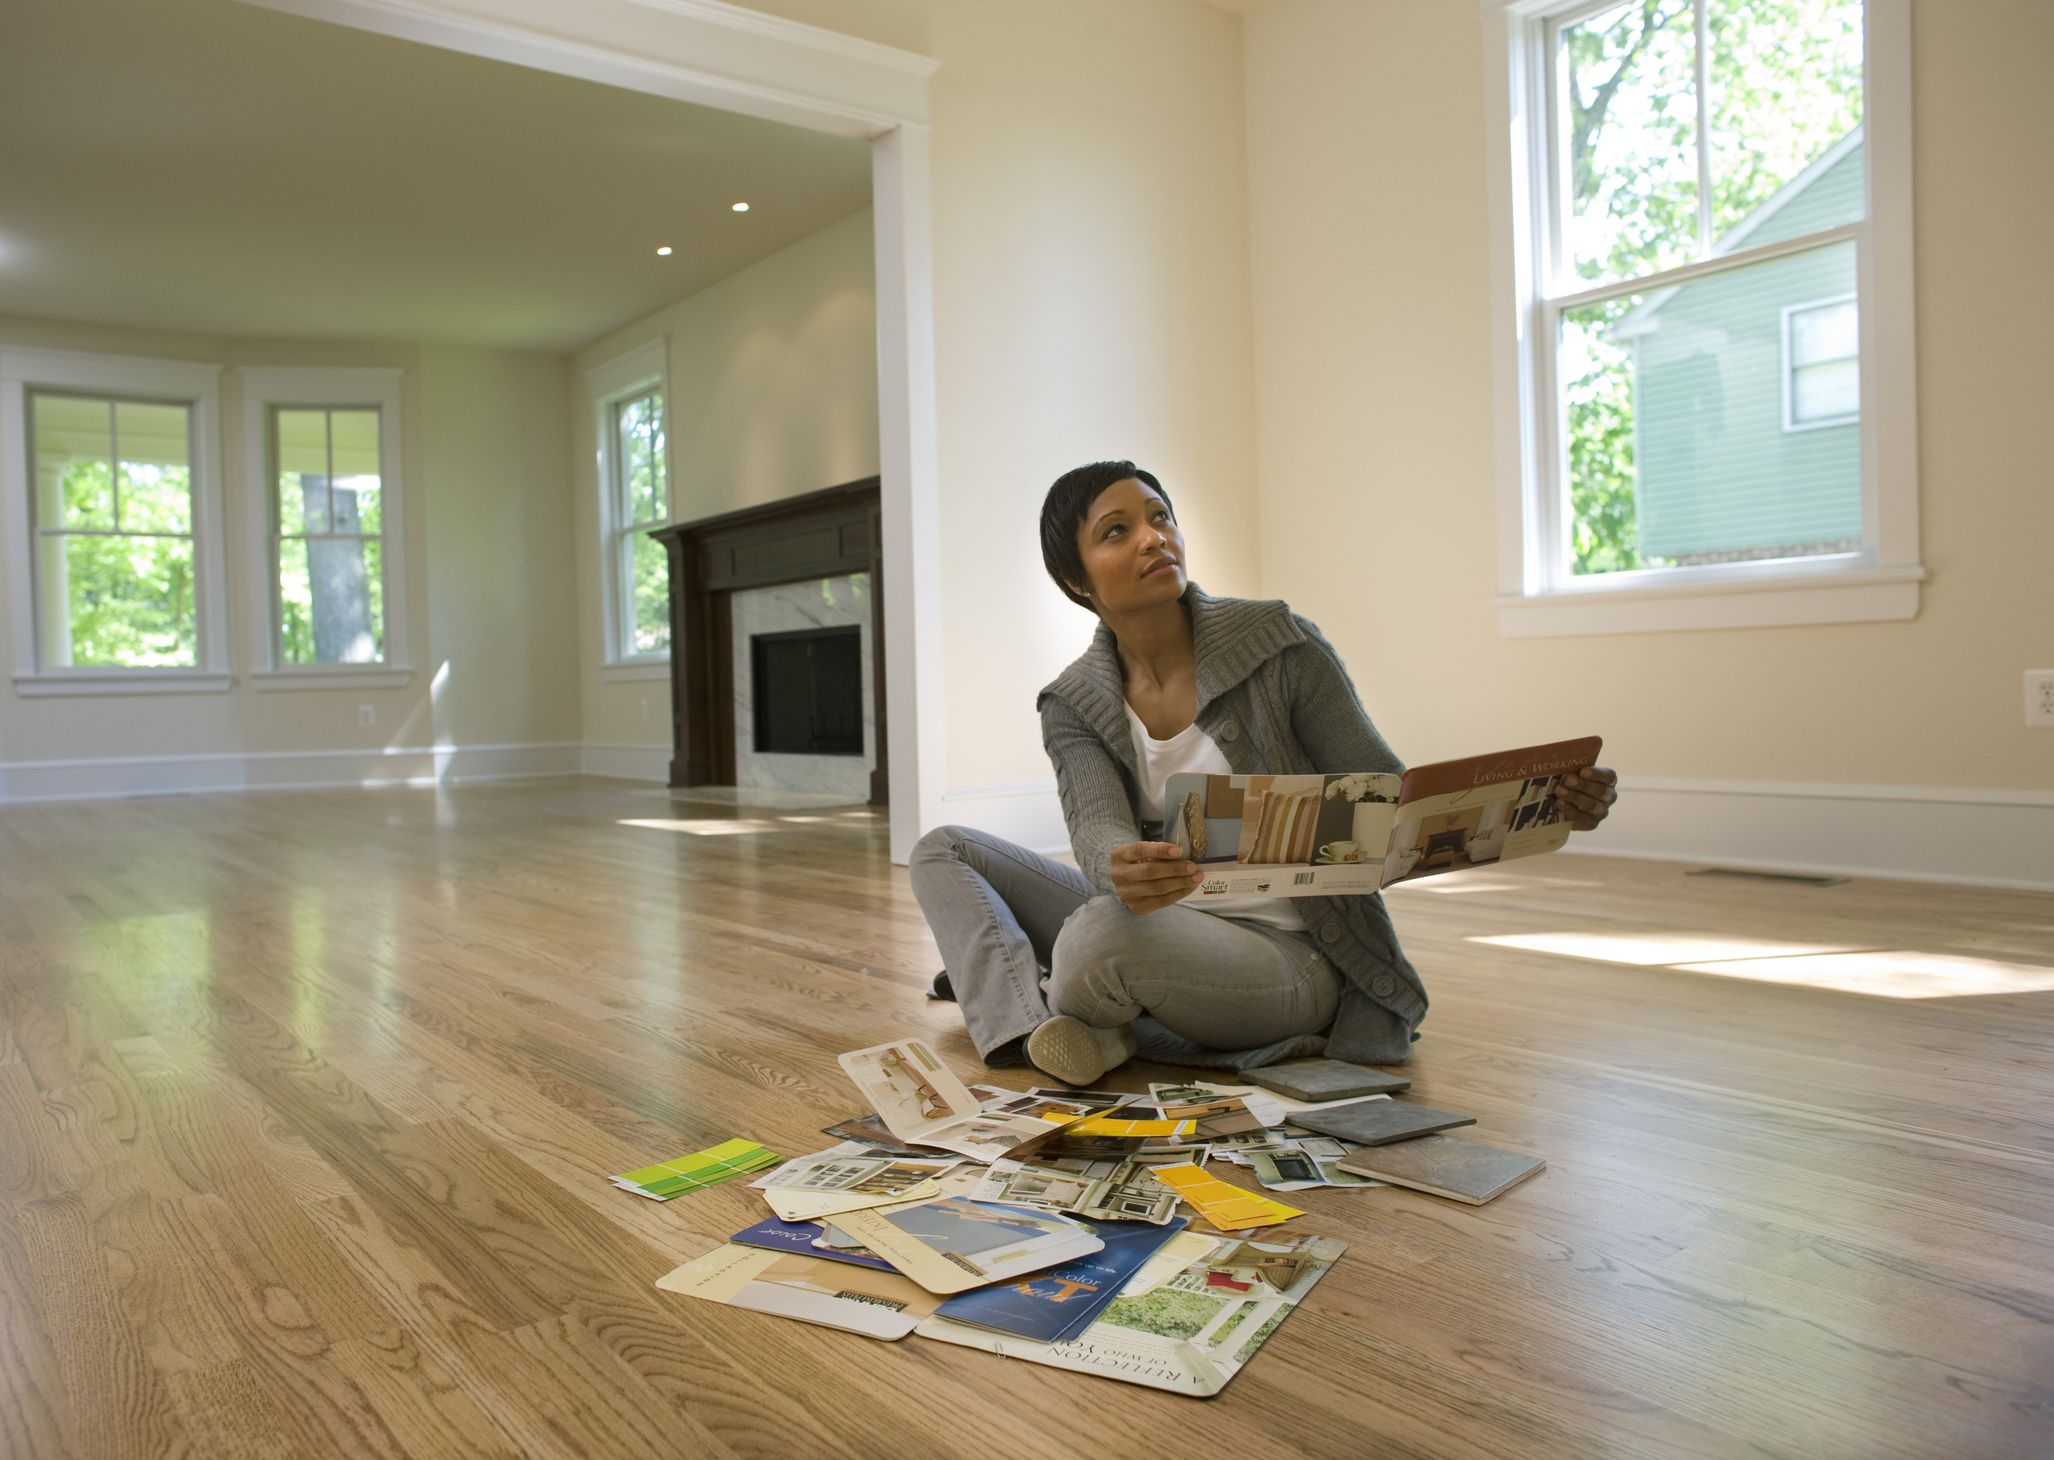 hardwood living room. Picture of Evaluating Rental Property The Best Flooring Options for